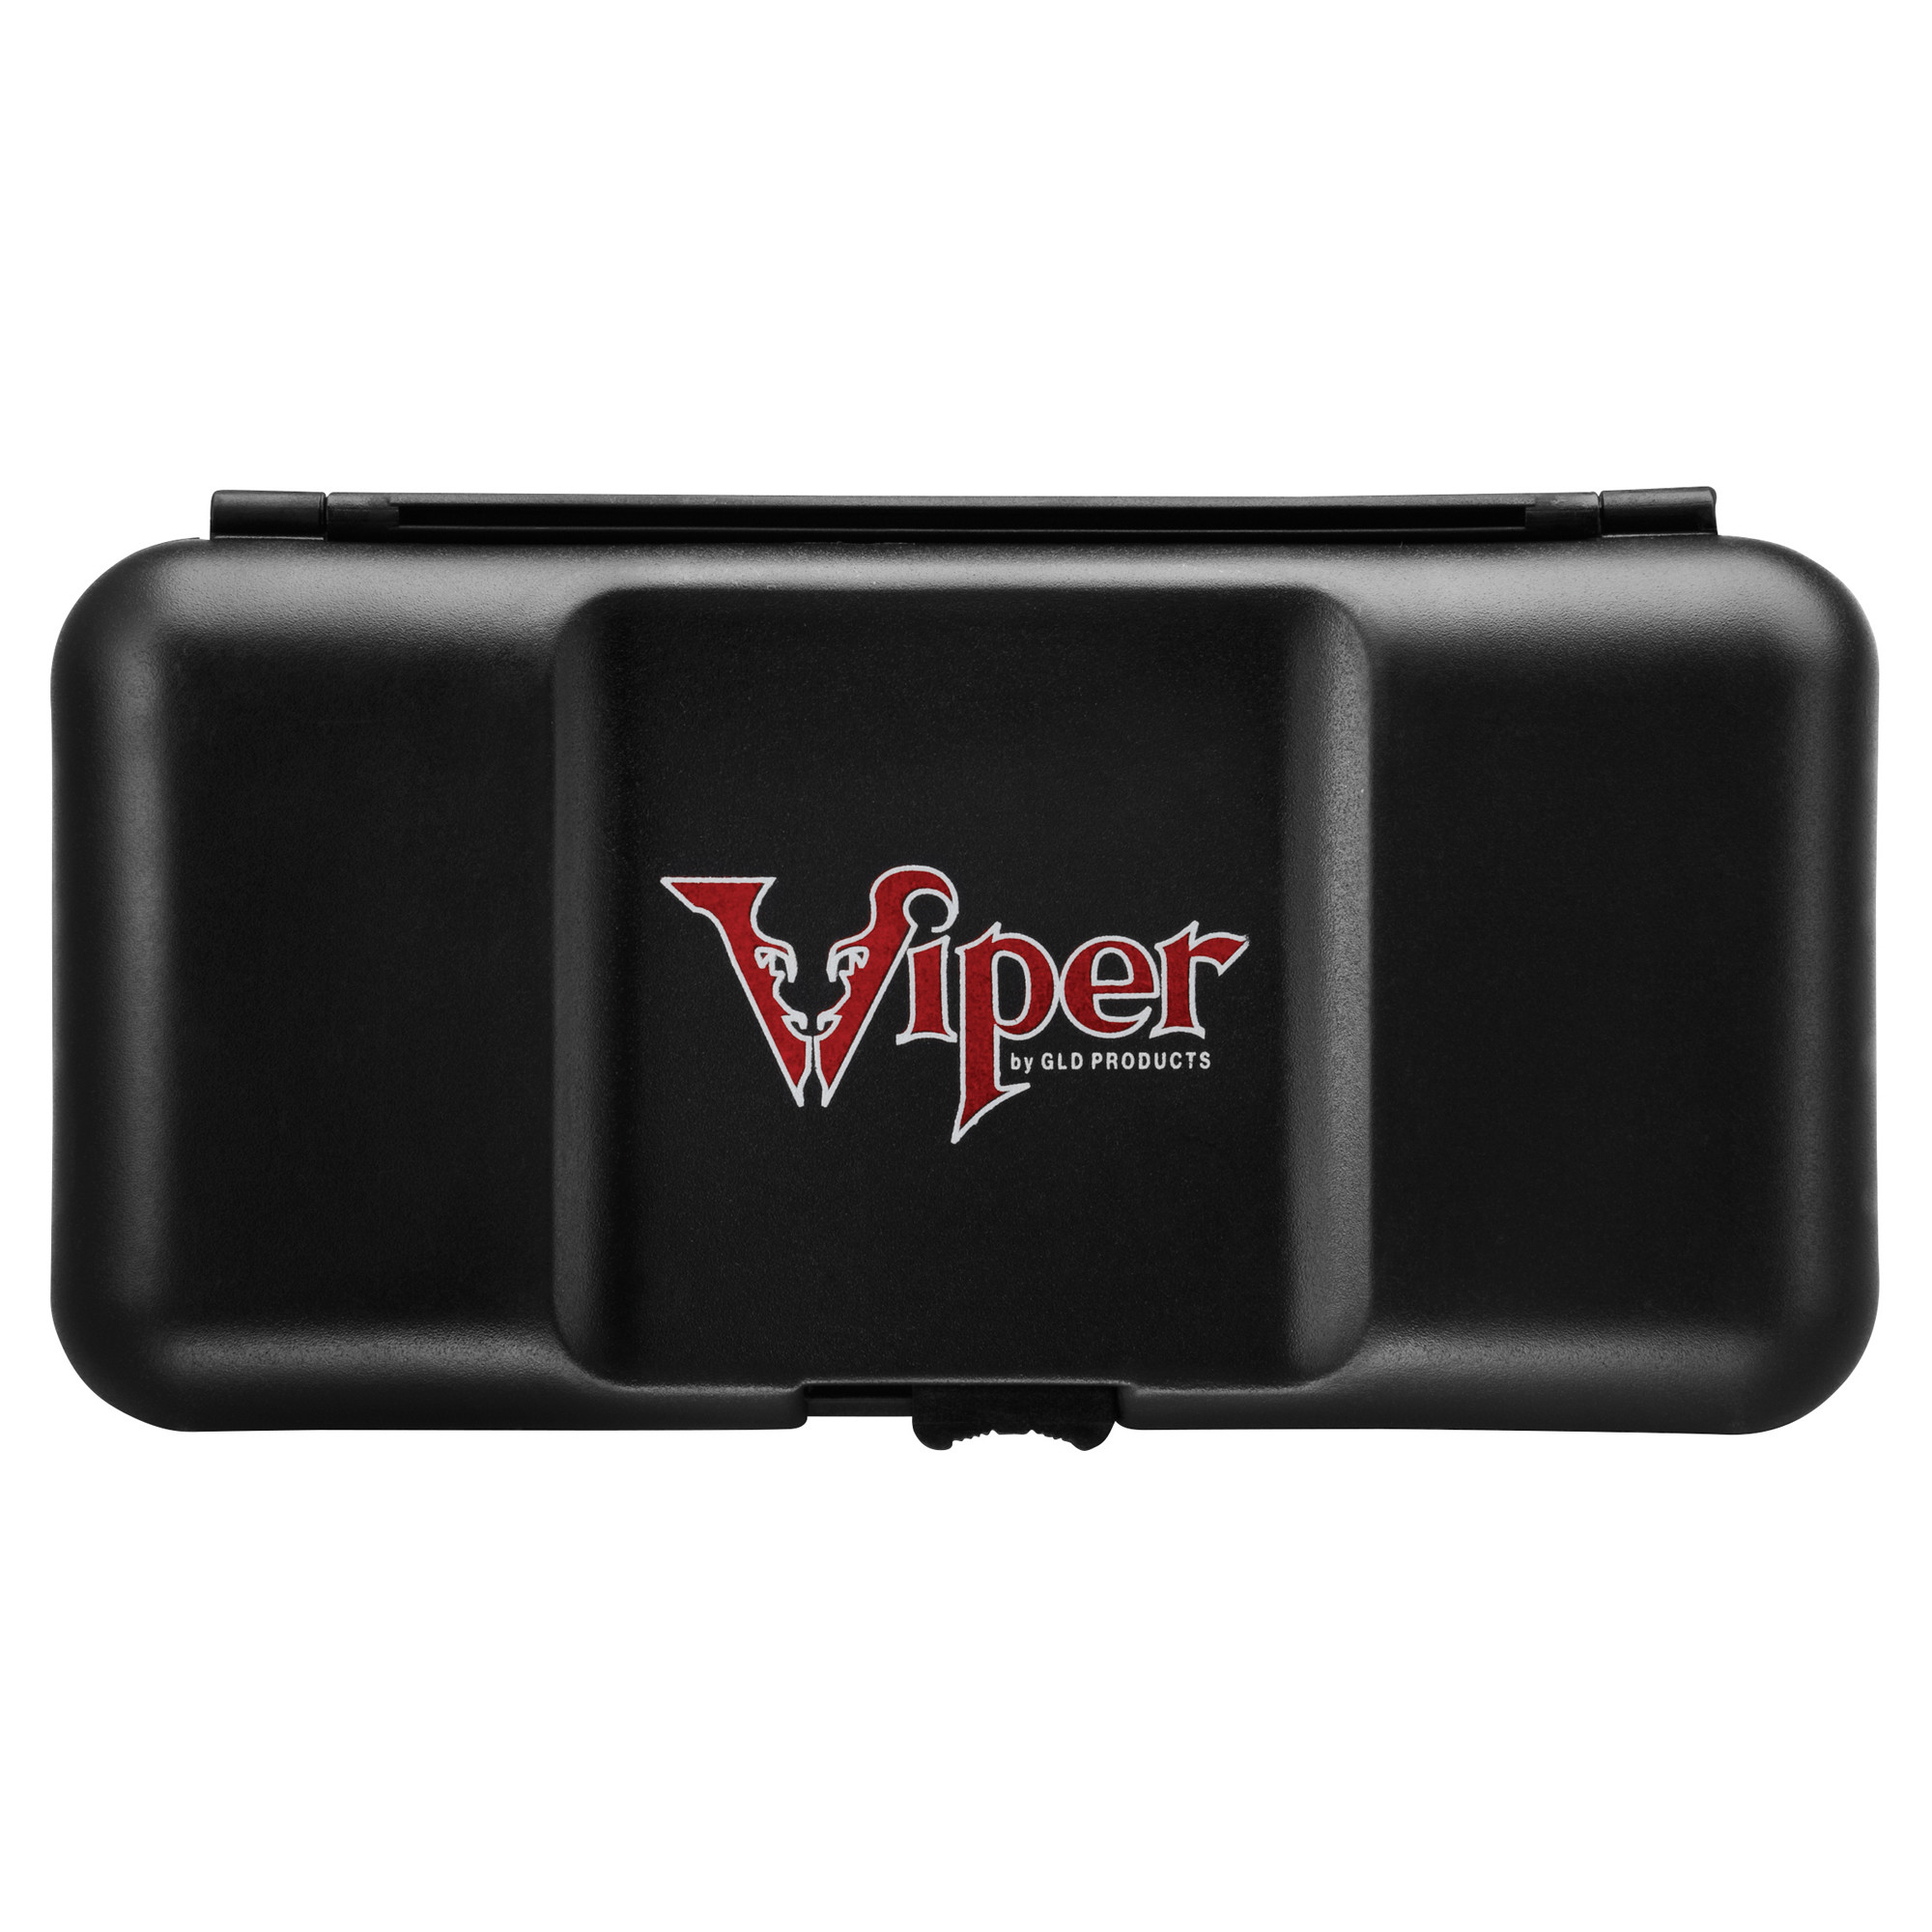 Viper-Bobcat-Adjustable-Weight-Soft-Tip-Darts-with-Storage-Travel-Case-Nicke thumbnail 3